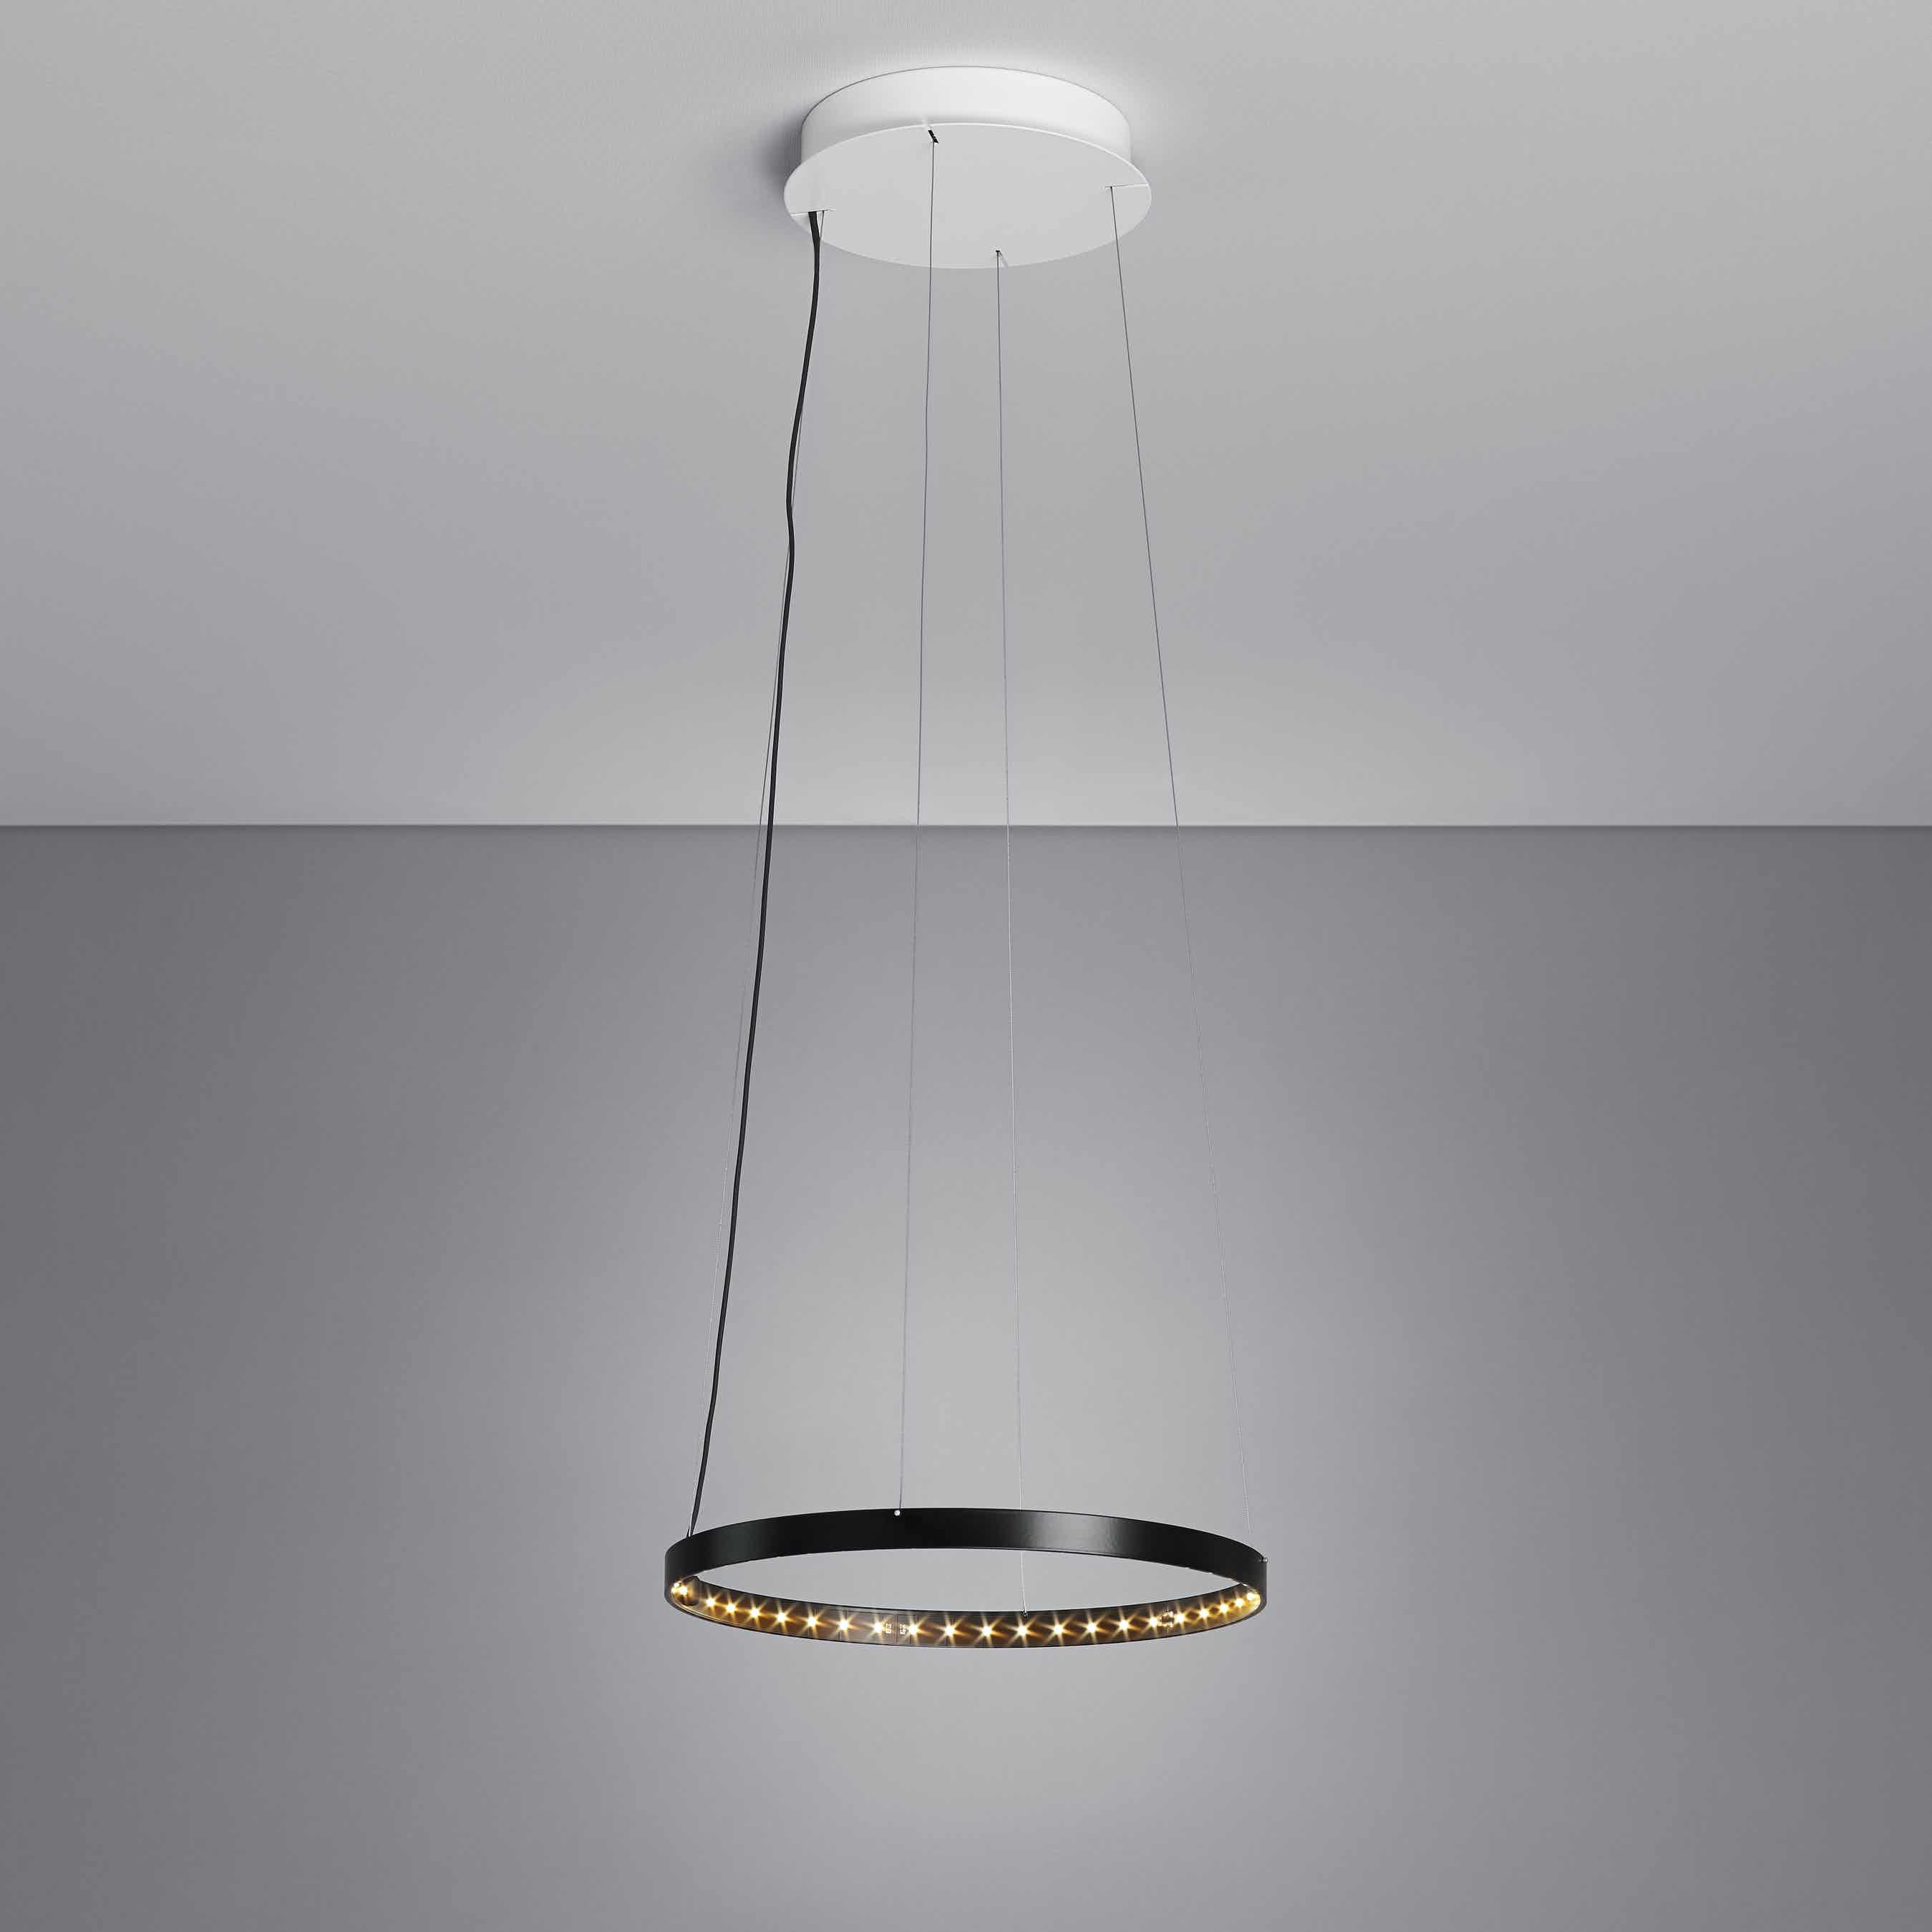 Le-deun-luminaires-circle-30-hanging-lamp-black-haute-living